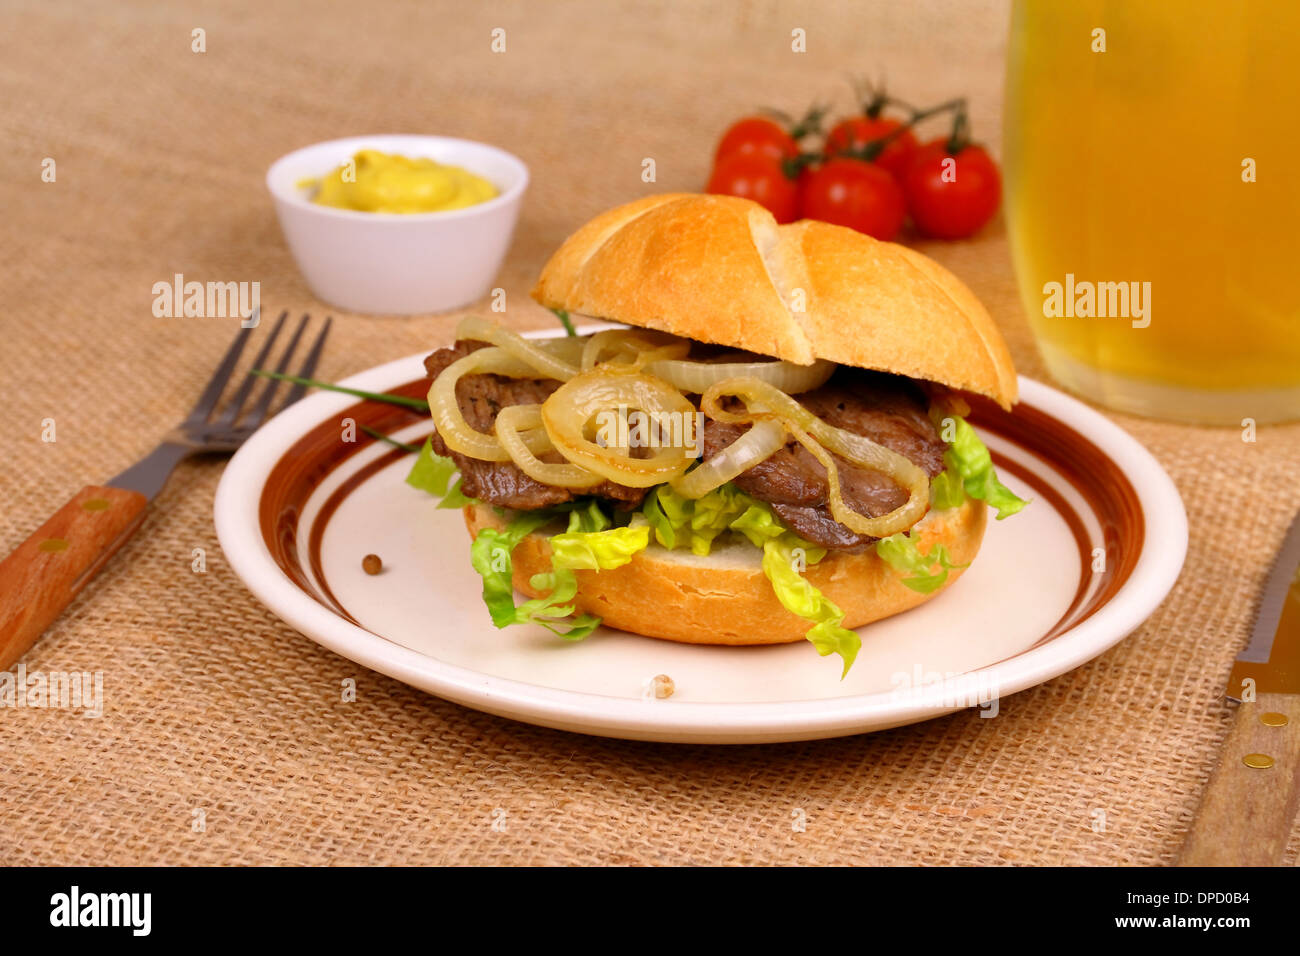 grilled beef with onion rings in bun mustard beer close up stock photo royalty free image. Black Bedroom Furniture Sets. Home Design Ideas